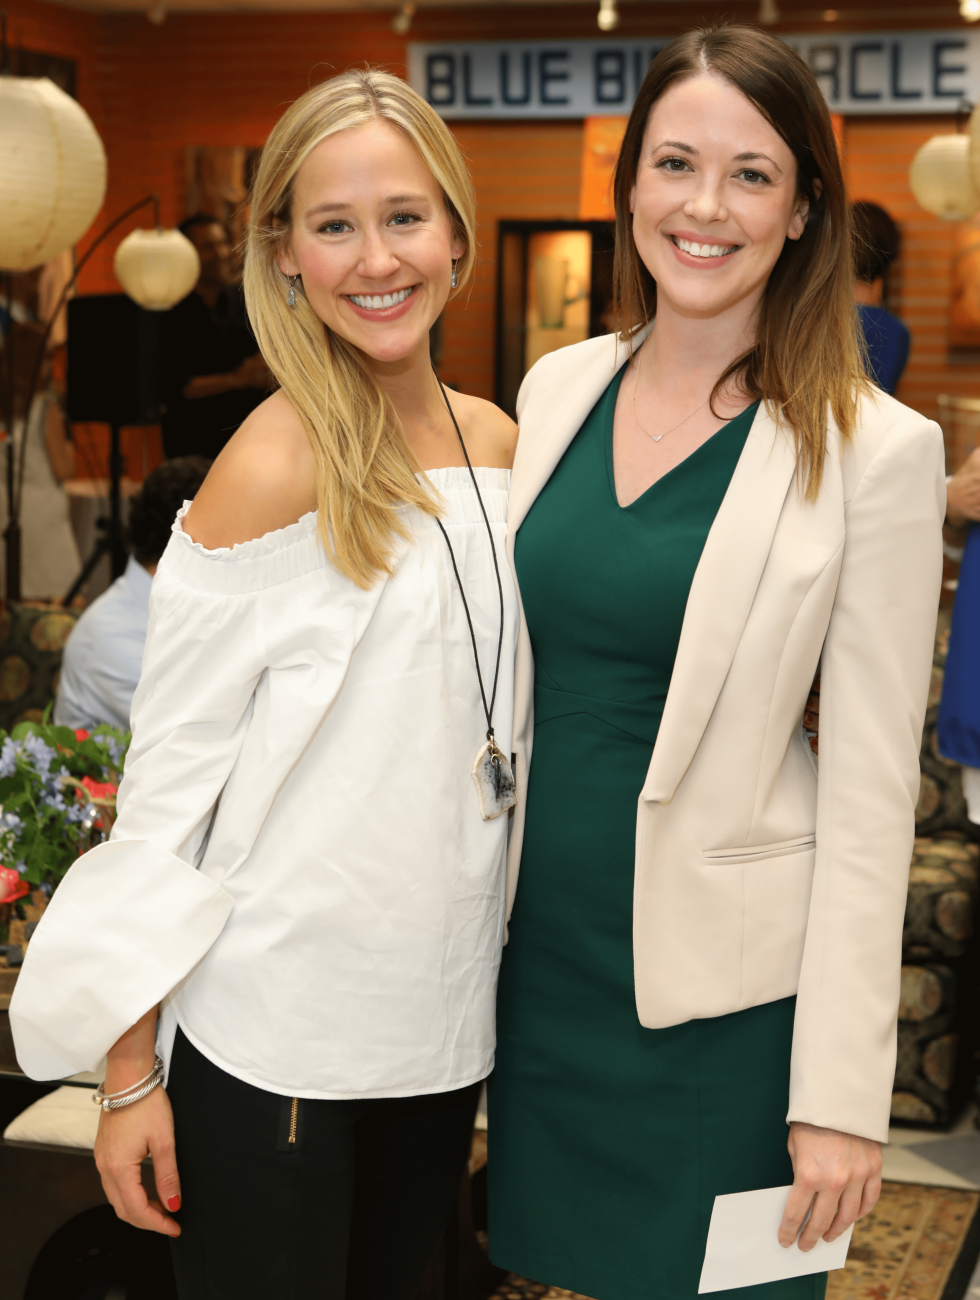 Houston, Blue Bird Circle Young Professional Partnership, Oct 2016, Emily Northcutt, Haley Urquhart